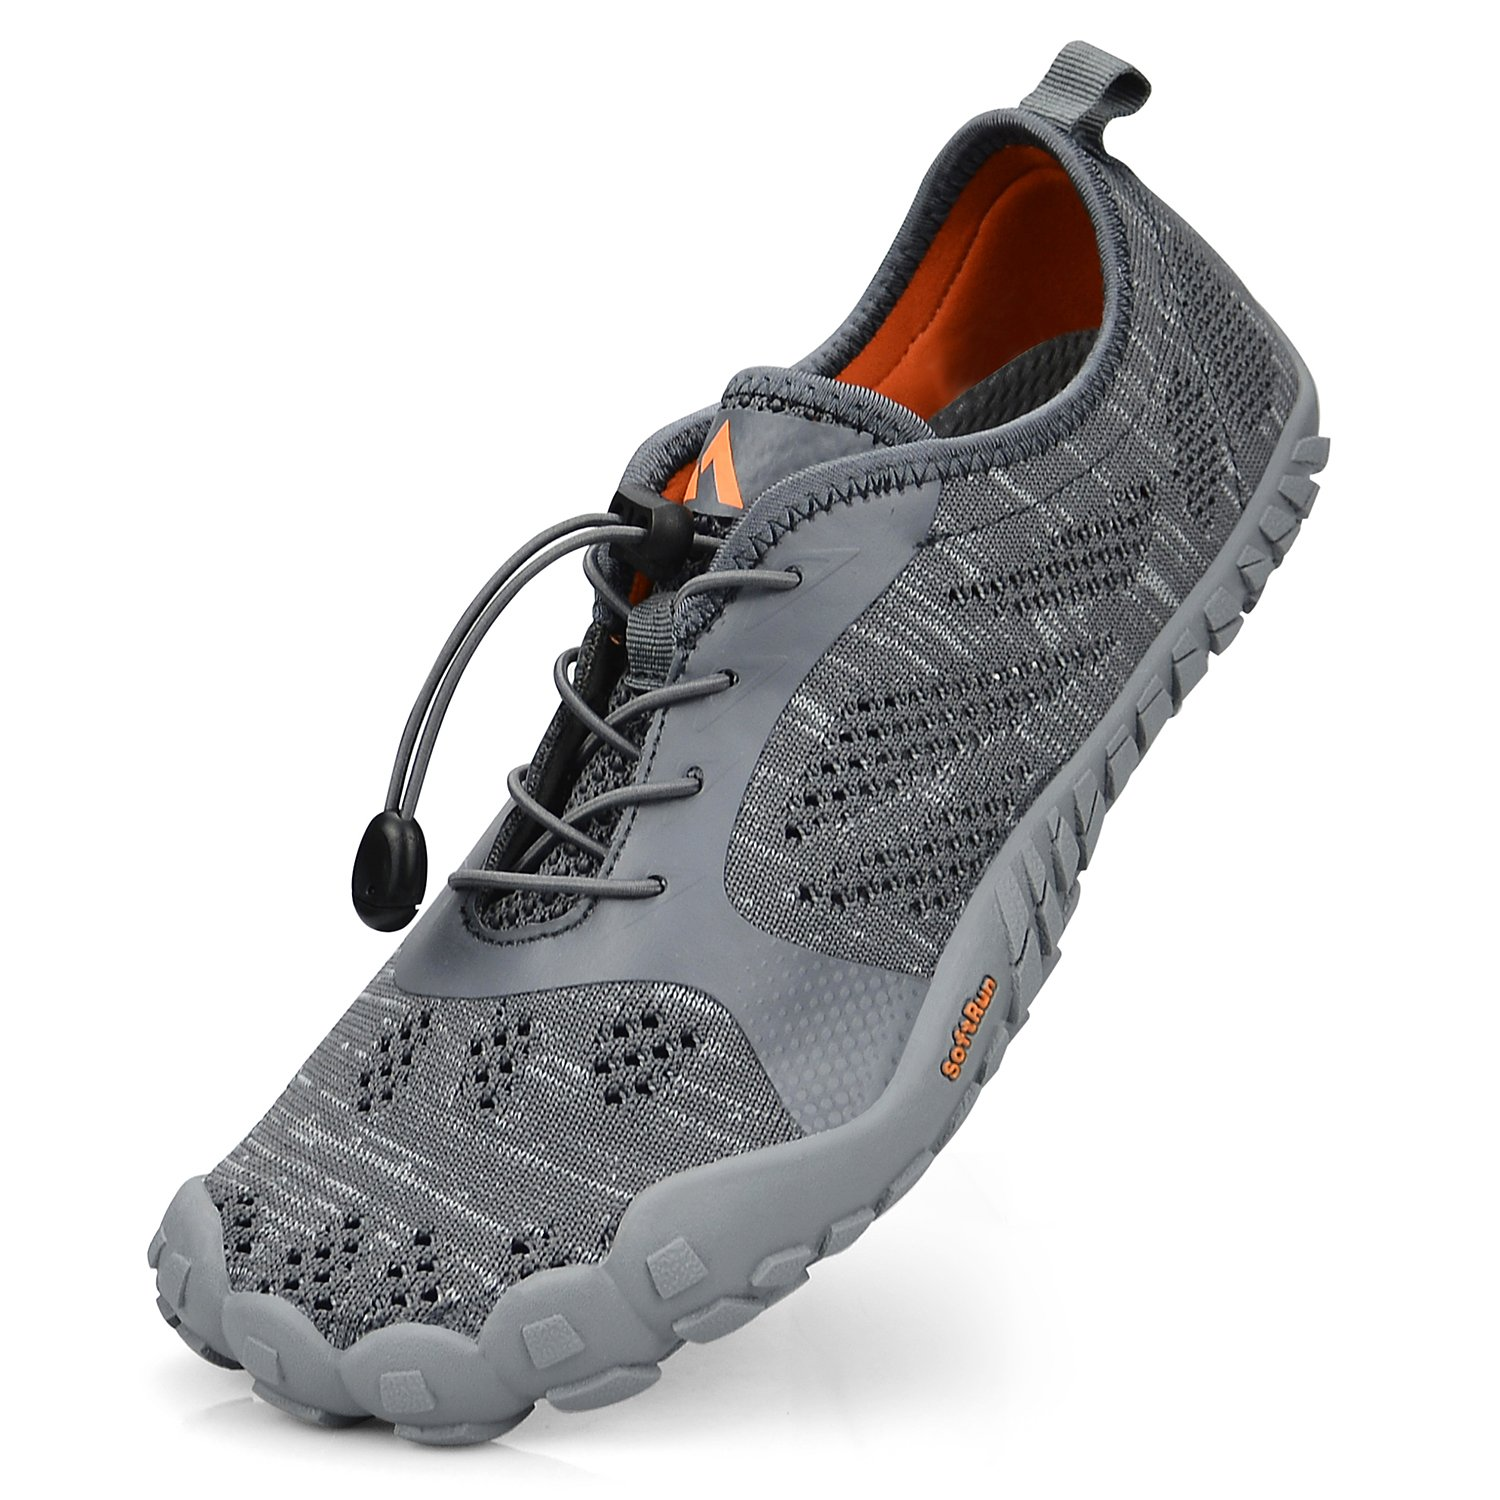 QANSI Womens Hiking Shoes Mesh Barefoot Water Shoes Gym Athletics Walking Outdoor Sneakers Grey Size 10.5